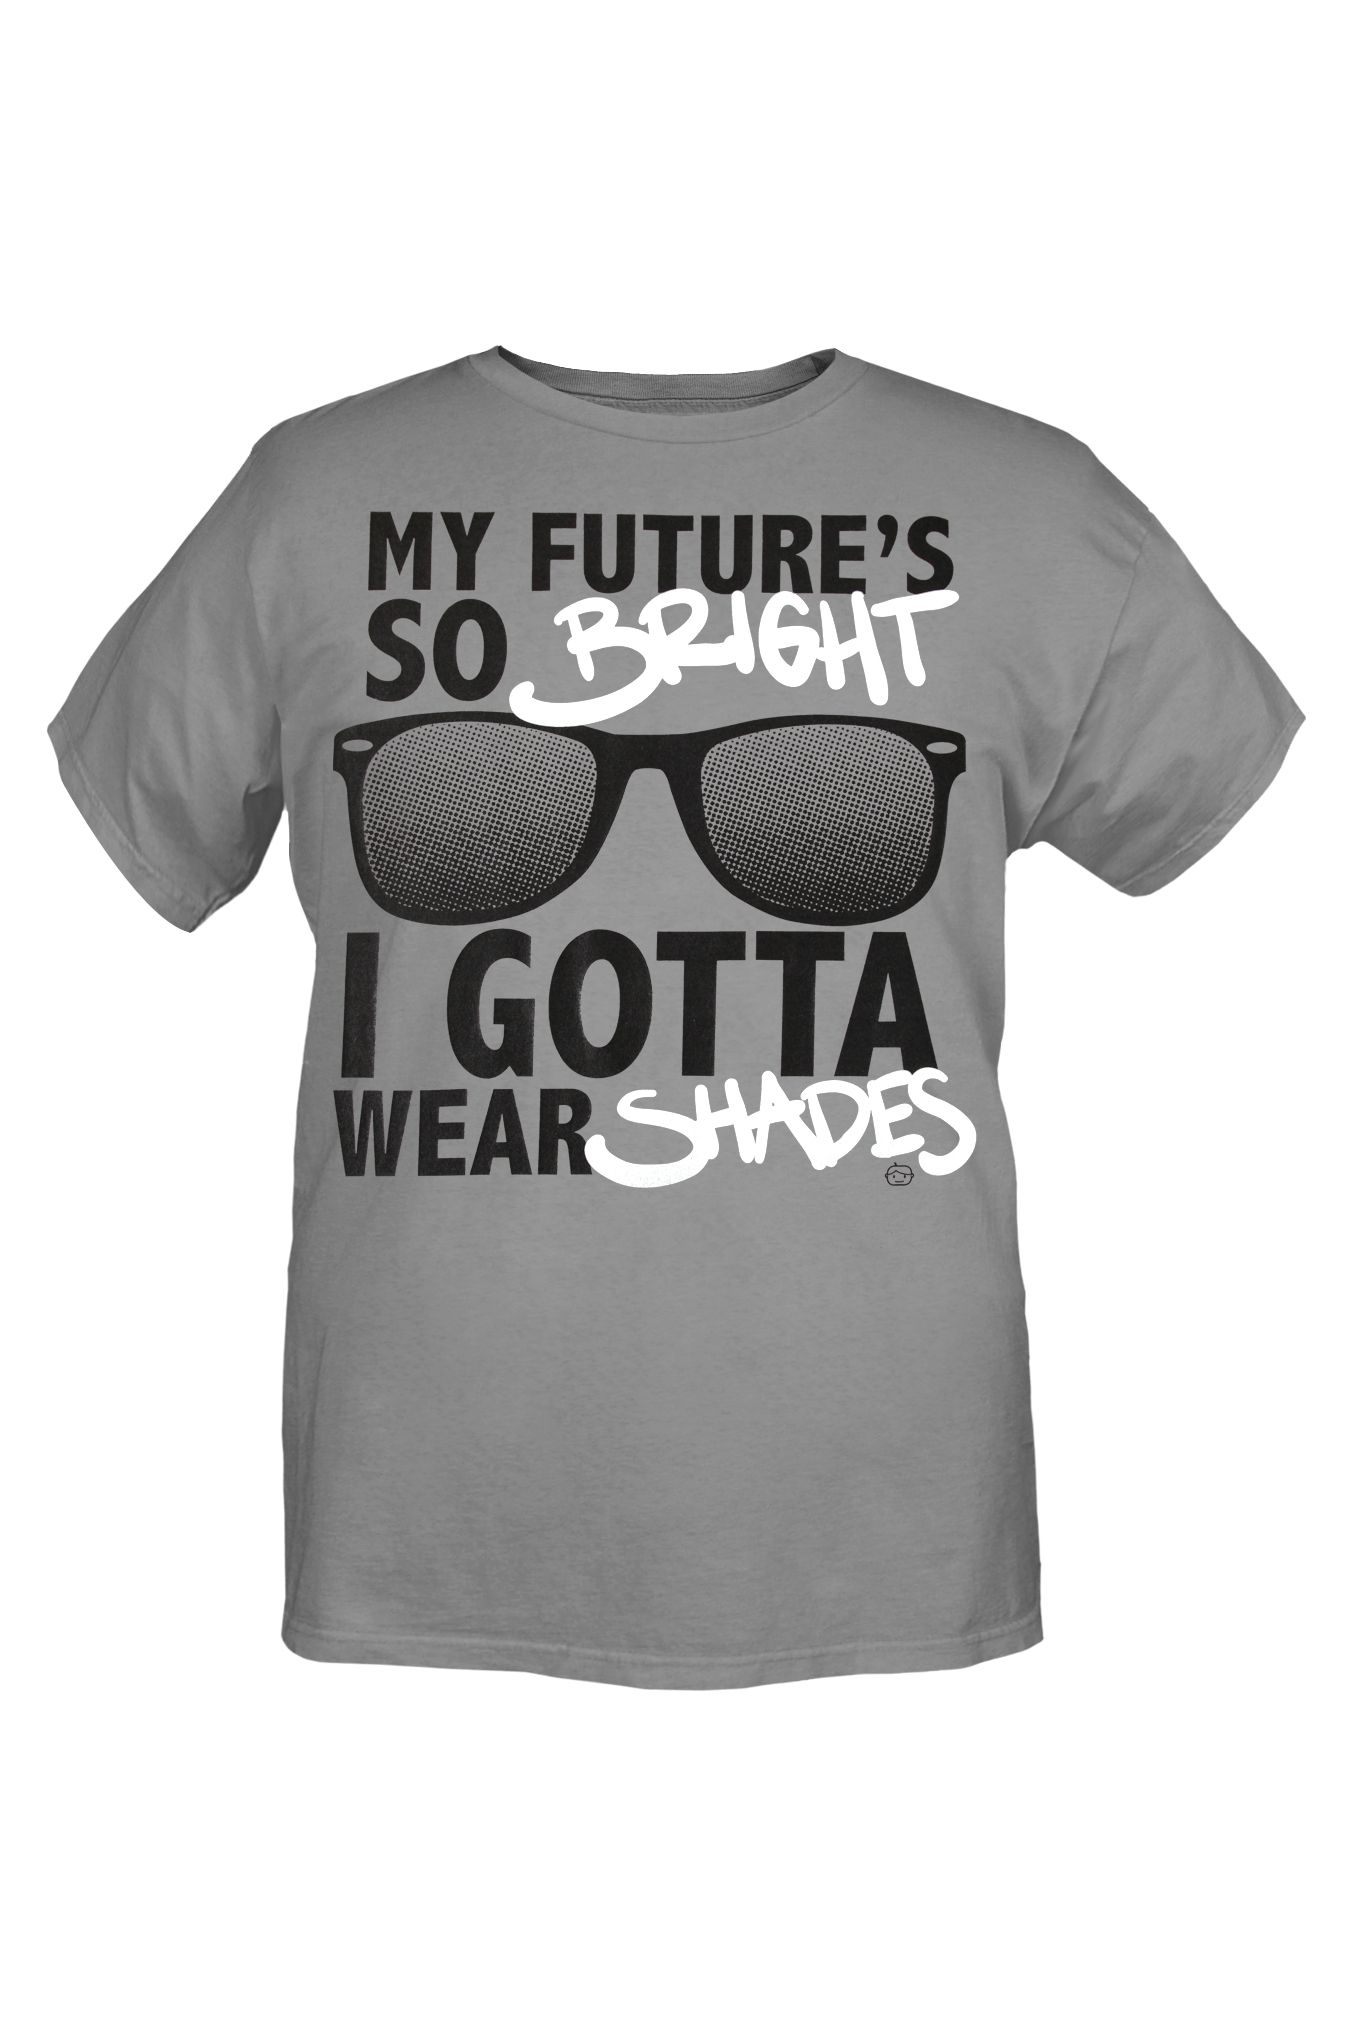 7055e5d53 Goodie Two Sleeves My Future's So Bright I Gotta Wear Shades T-Shirt | Hot  Topic